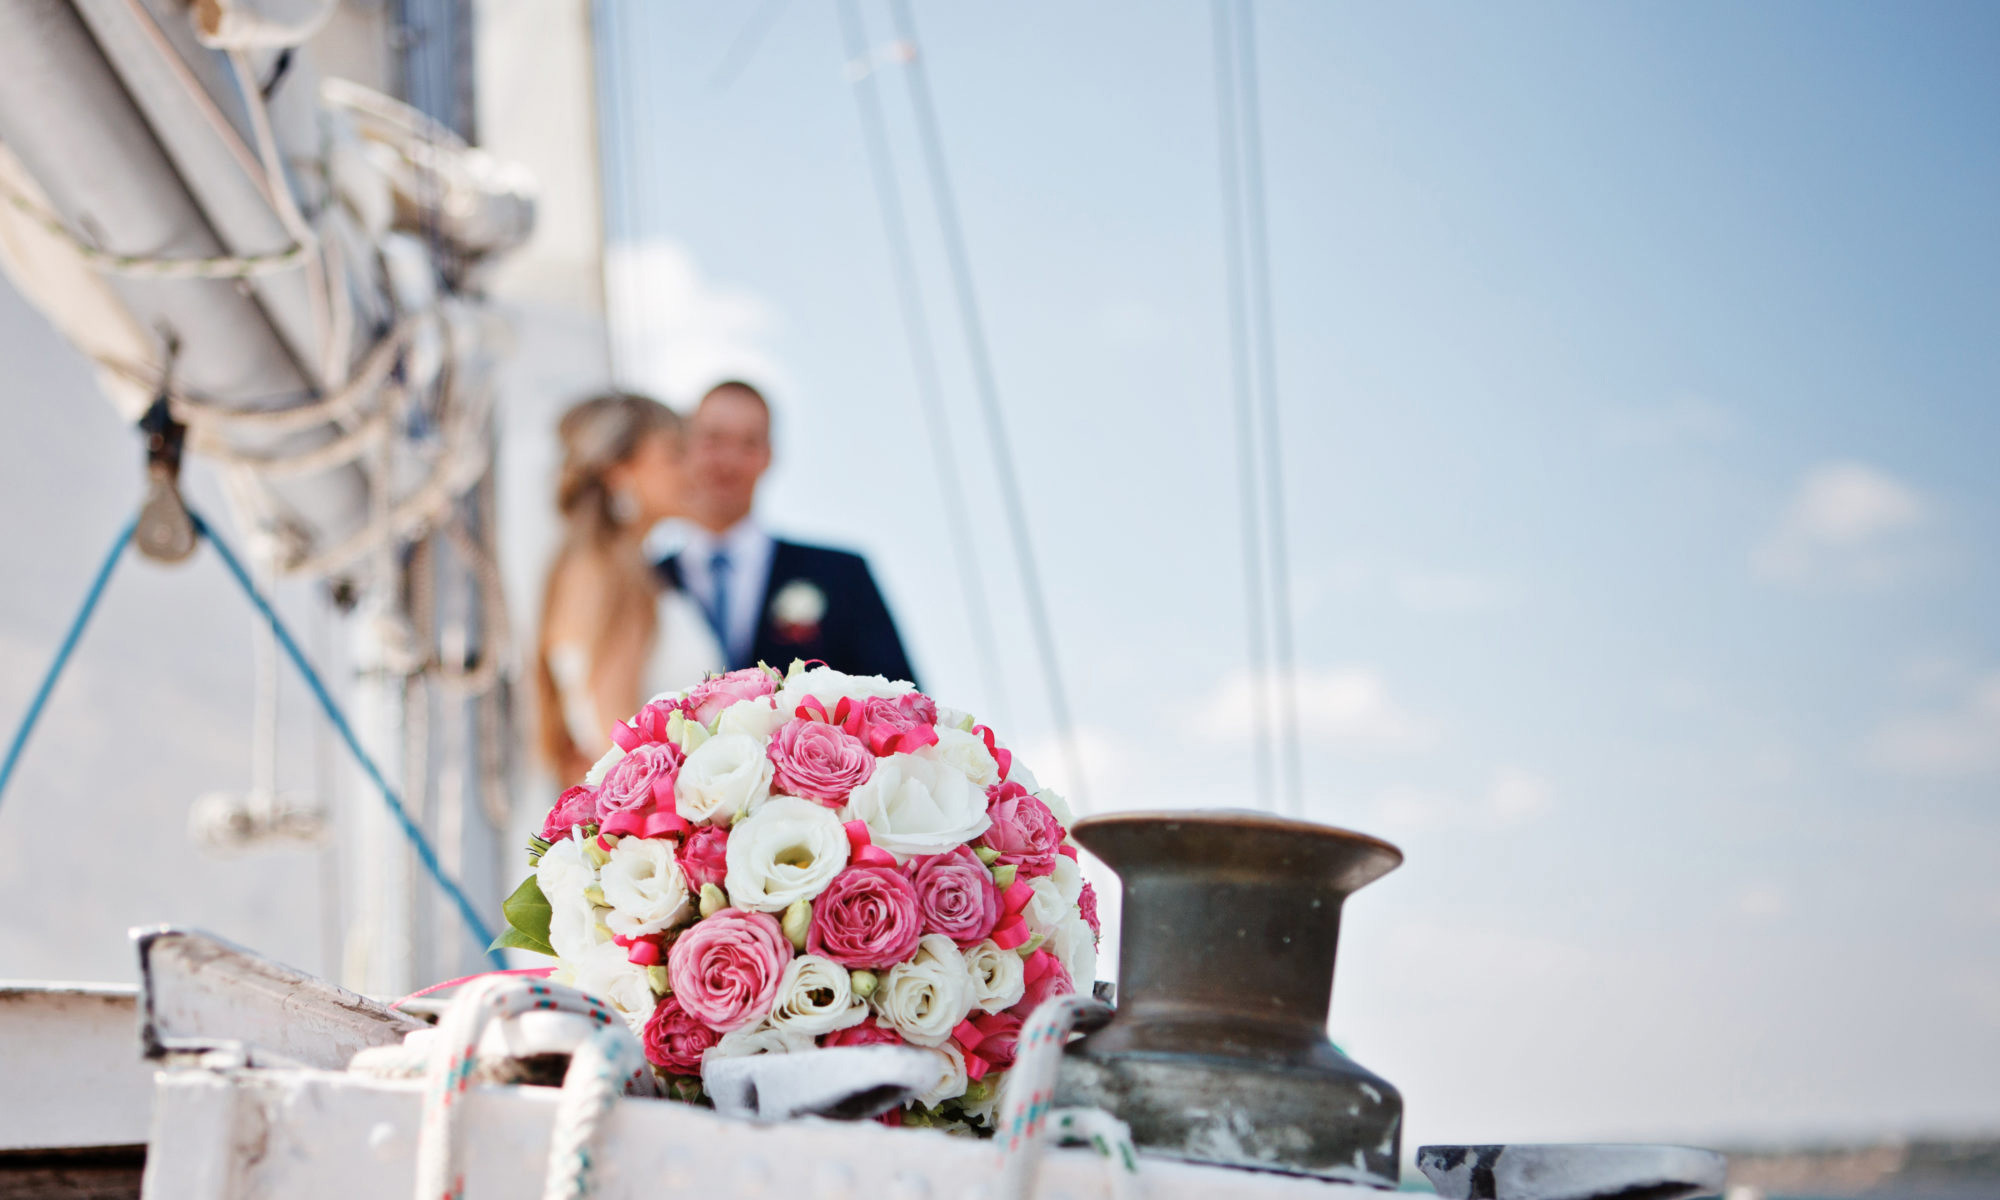 Shipboard weddings are very romantic